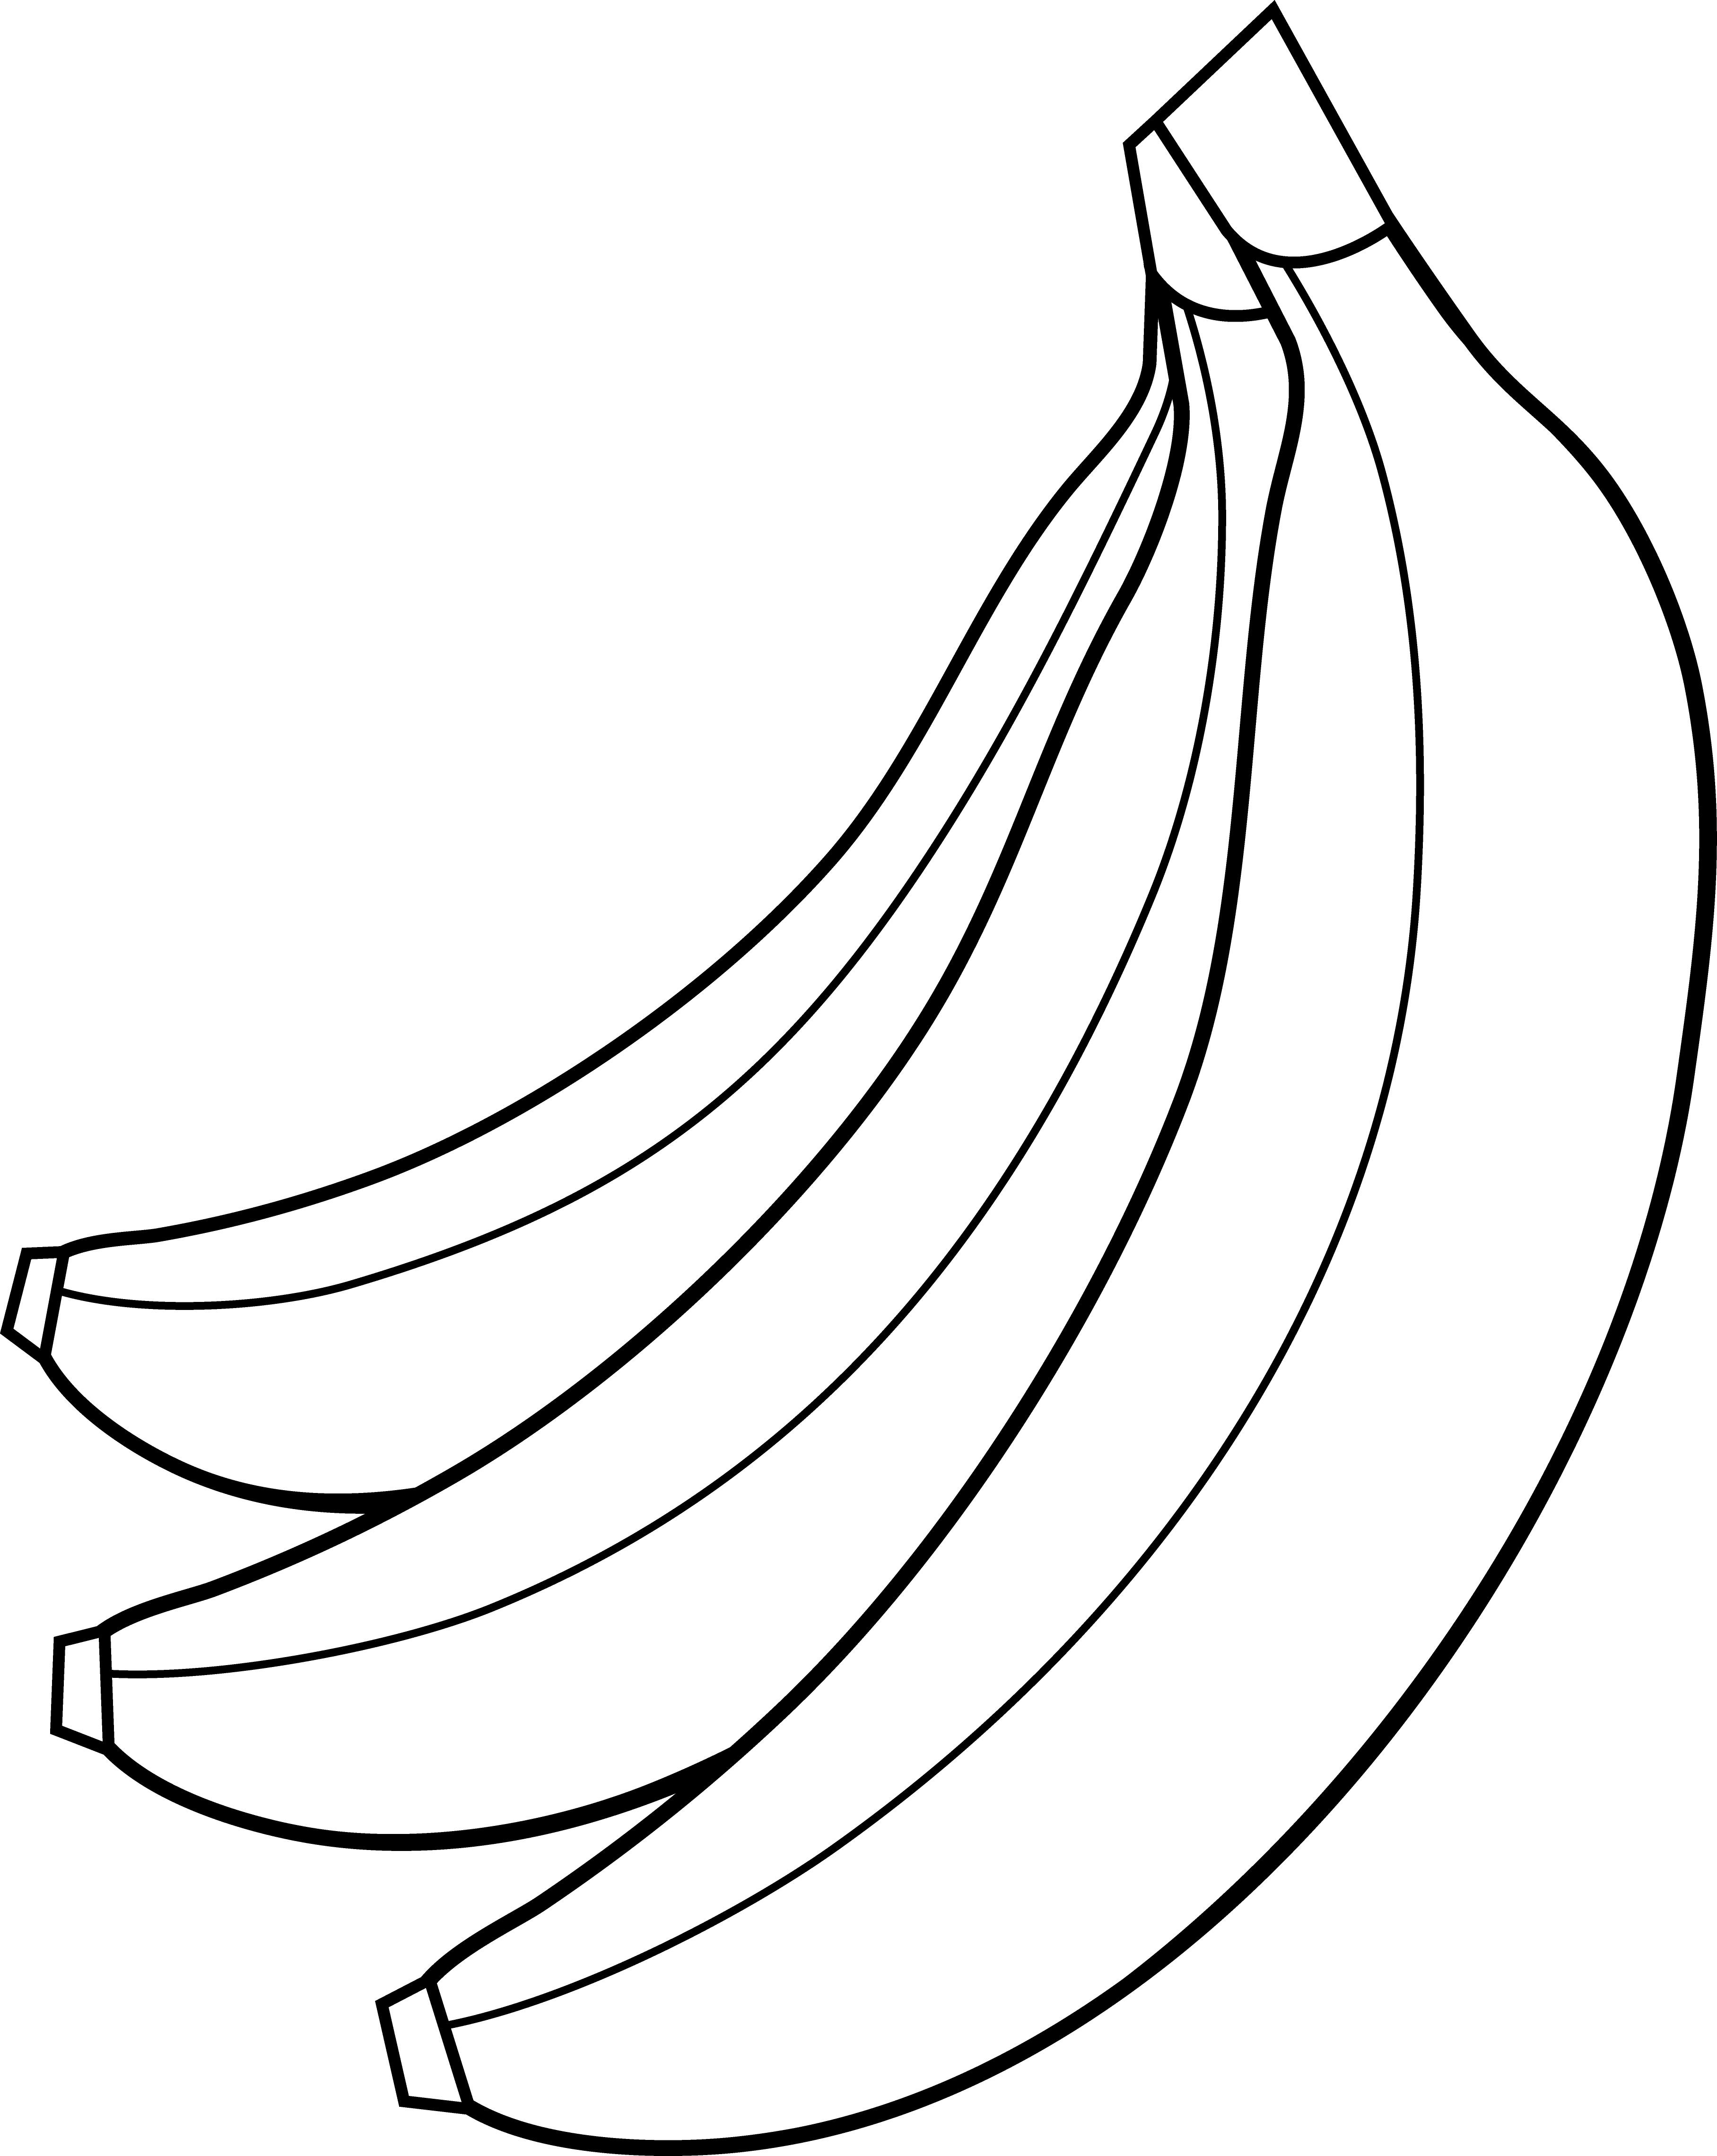 Colorable bunch of bananas. Clipart banana fruit vegetable